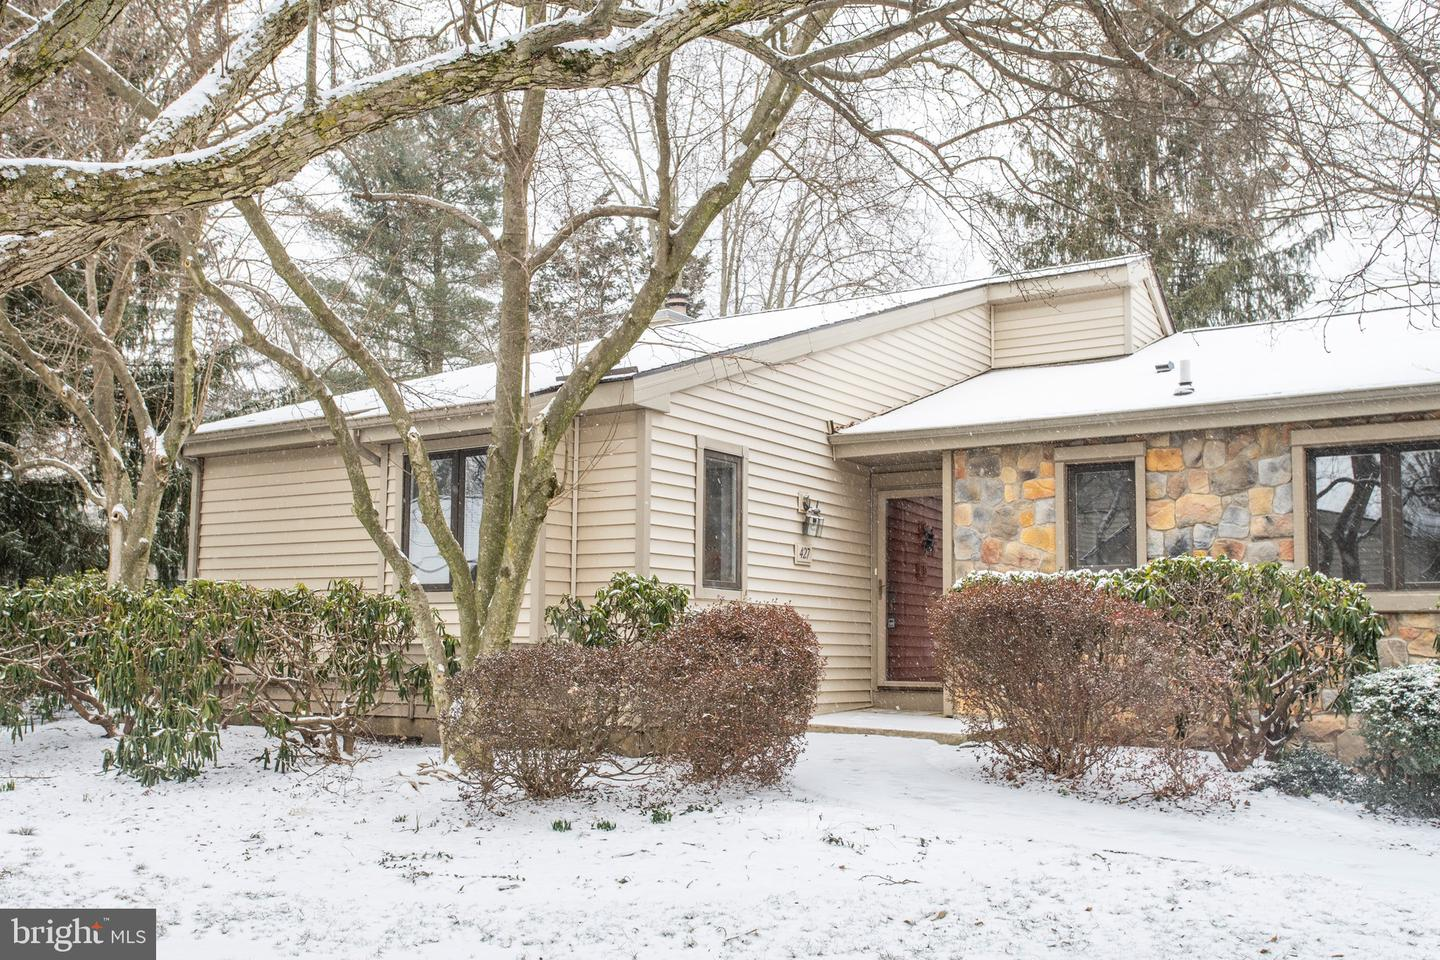 427 Eaton Way West Chester, PA 19380